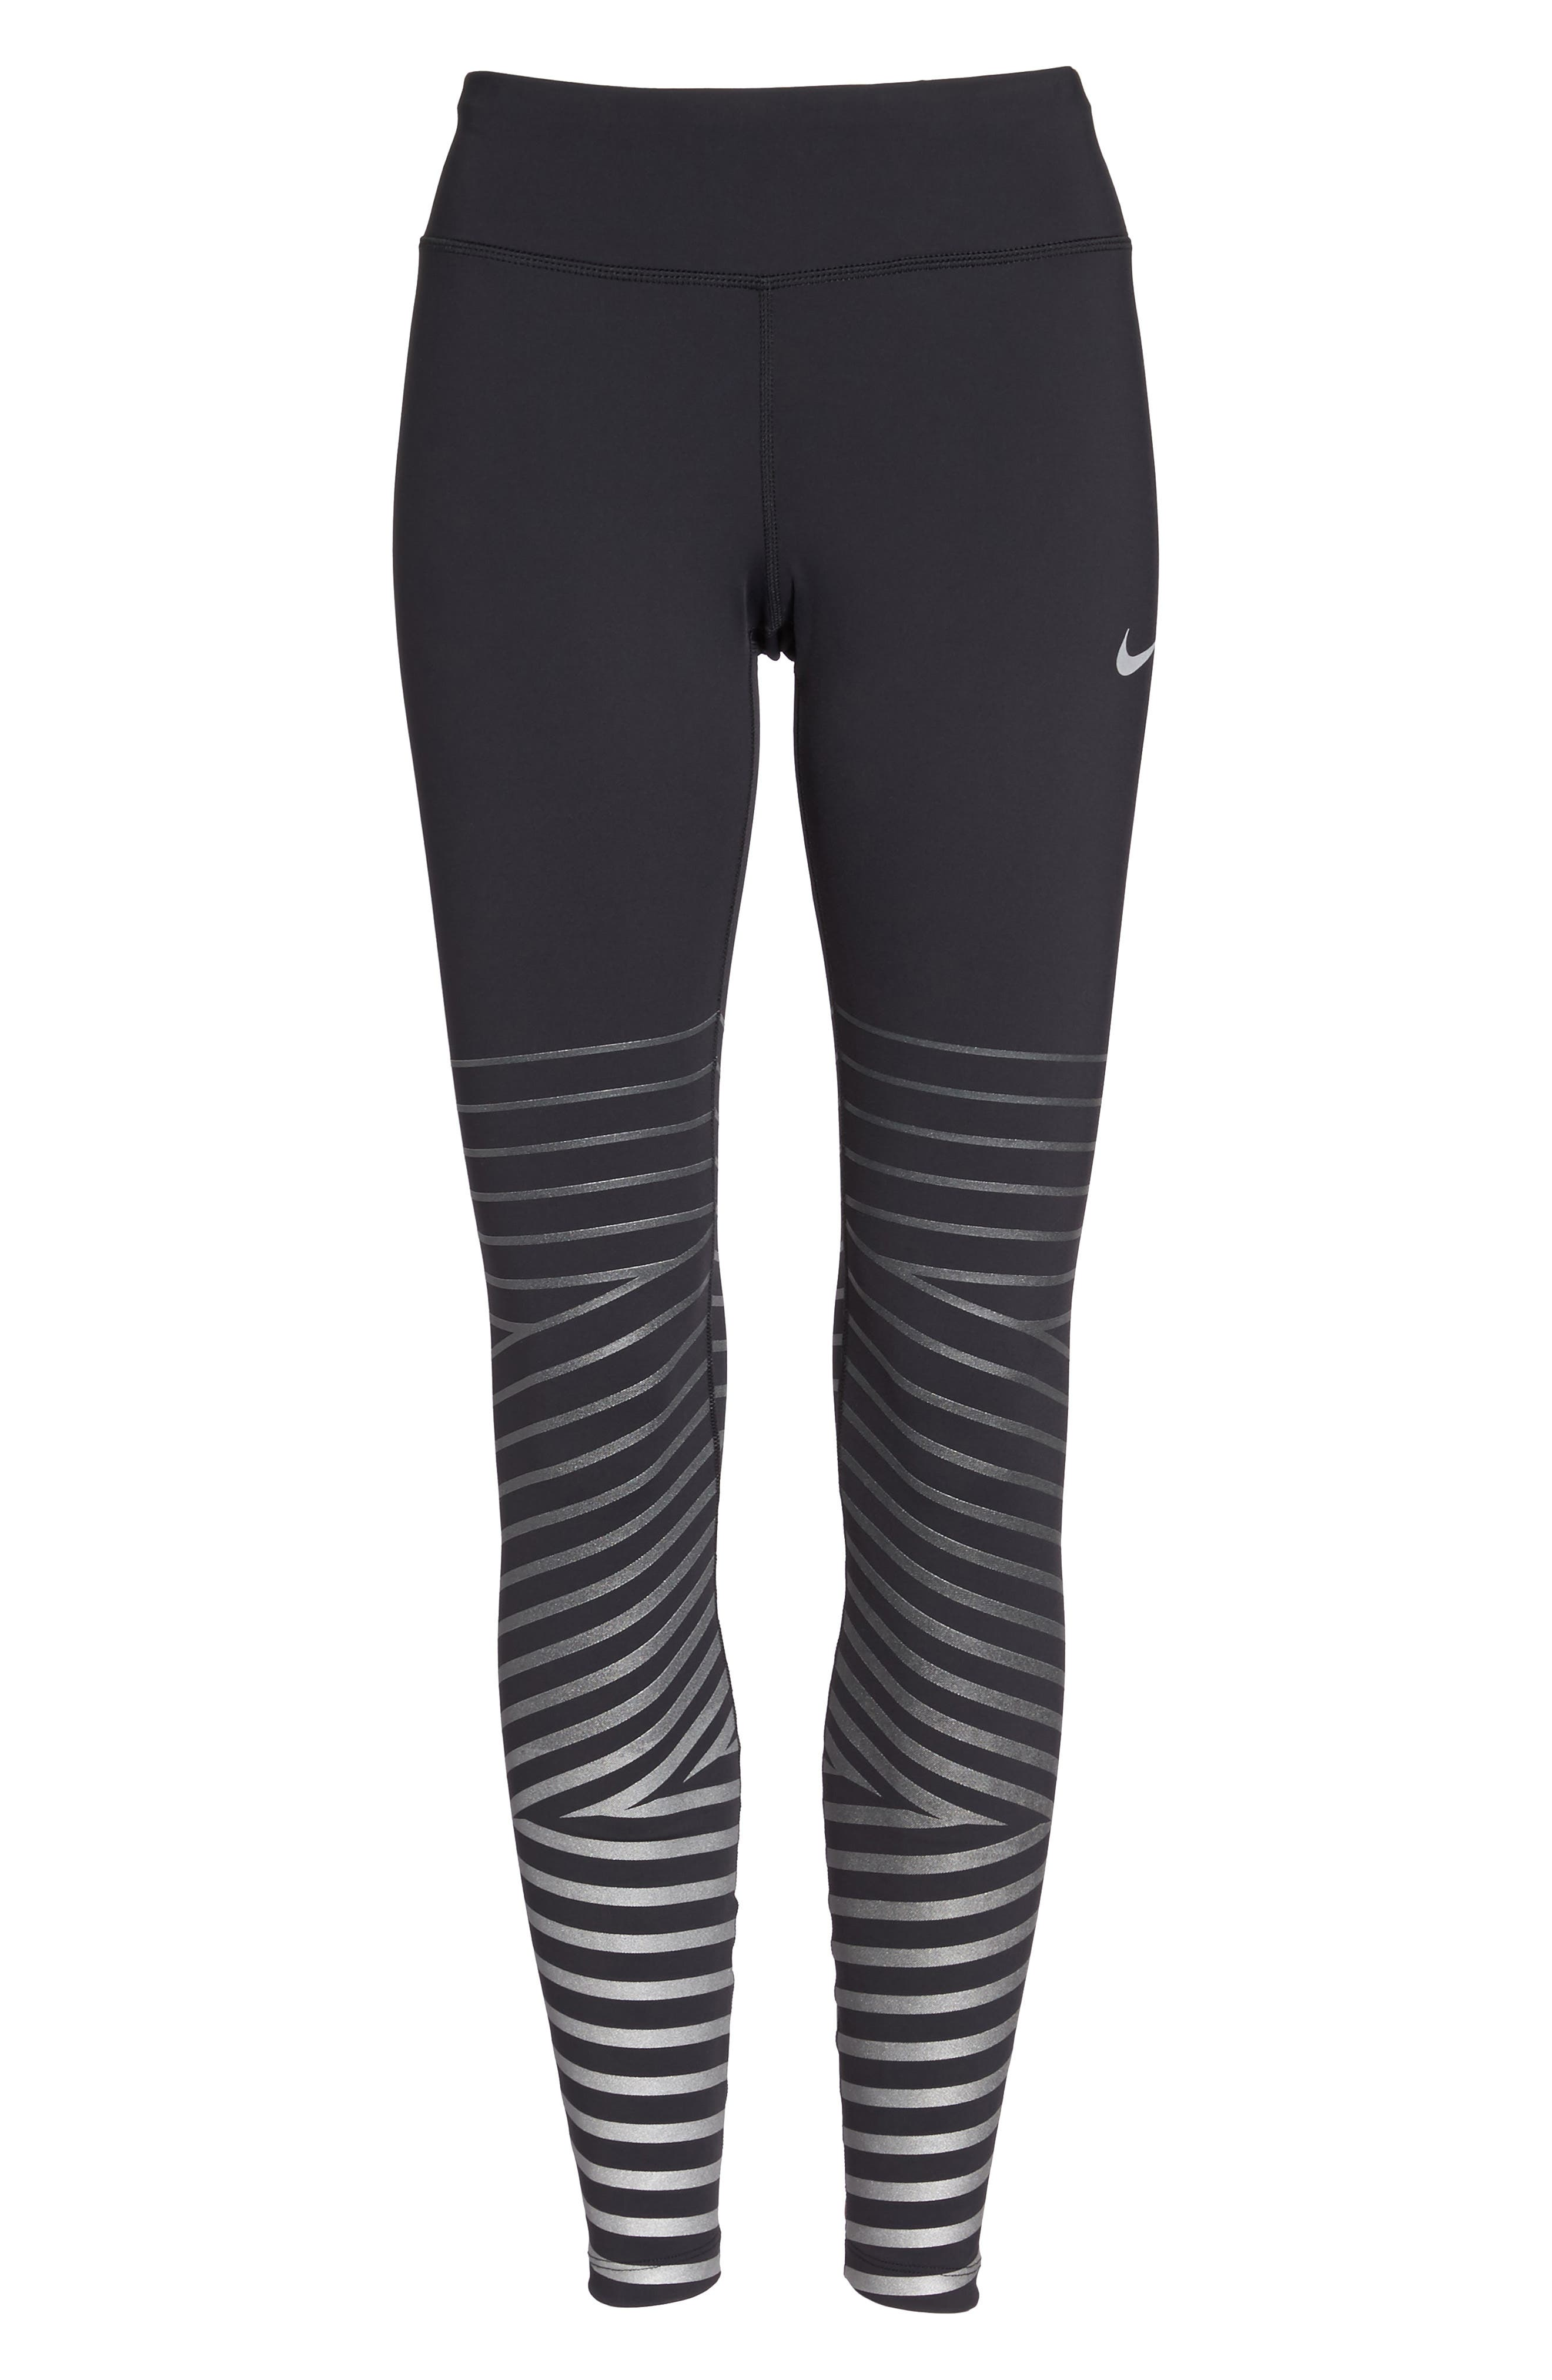 Power Epic Lux Flash Running Tights,                             Alternate thumbnail 6, color,                             Black/ Anthracite